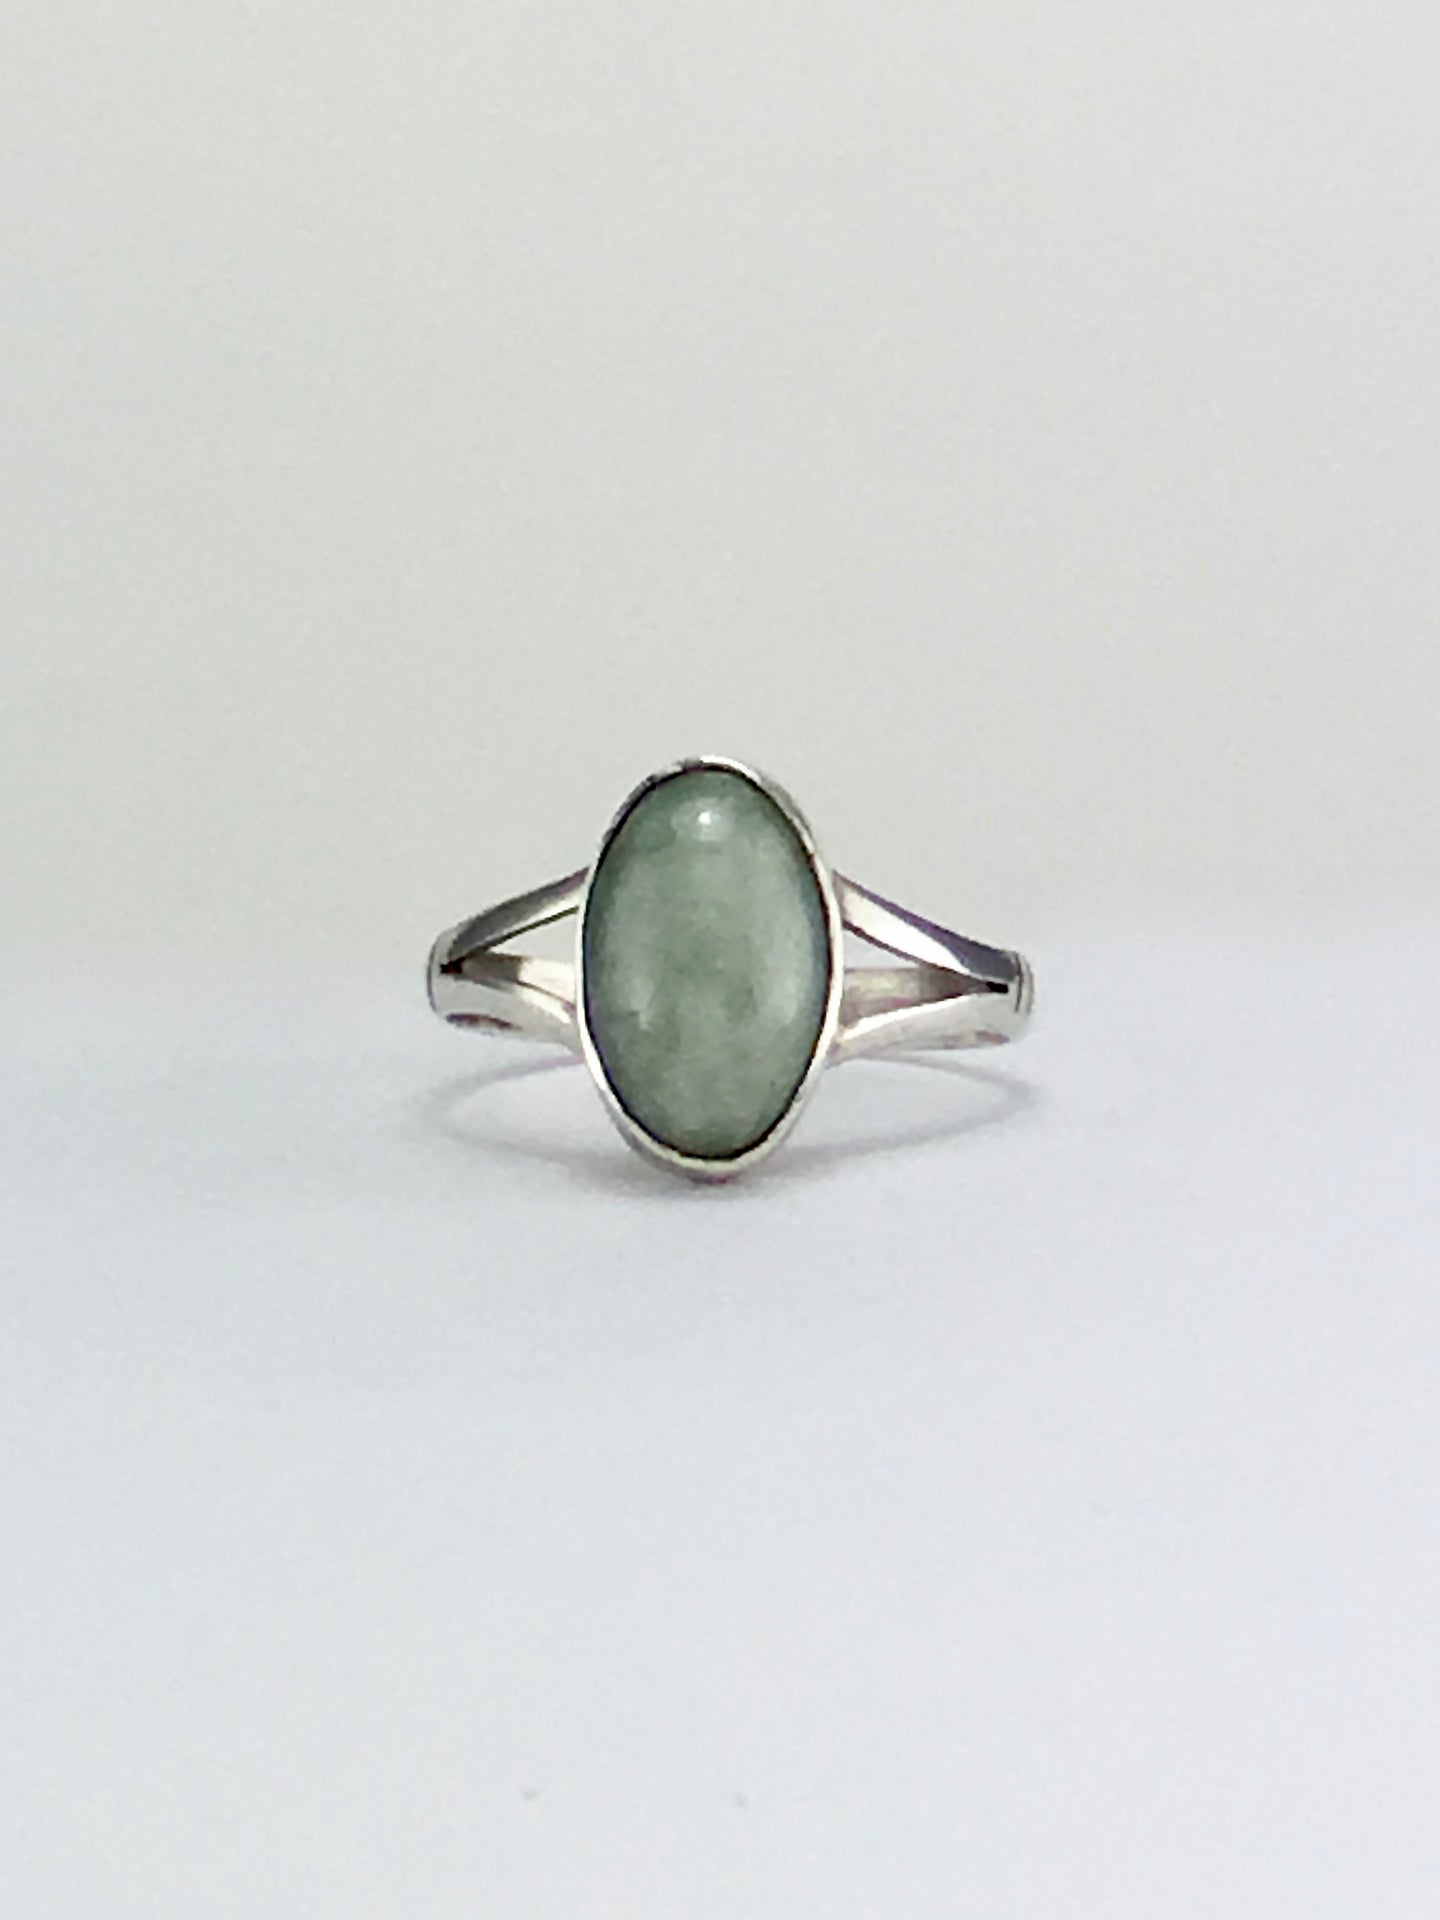 Light green oval jade cocktail ring